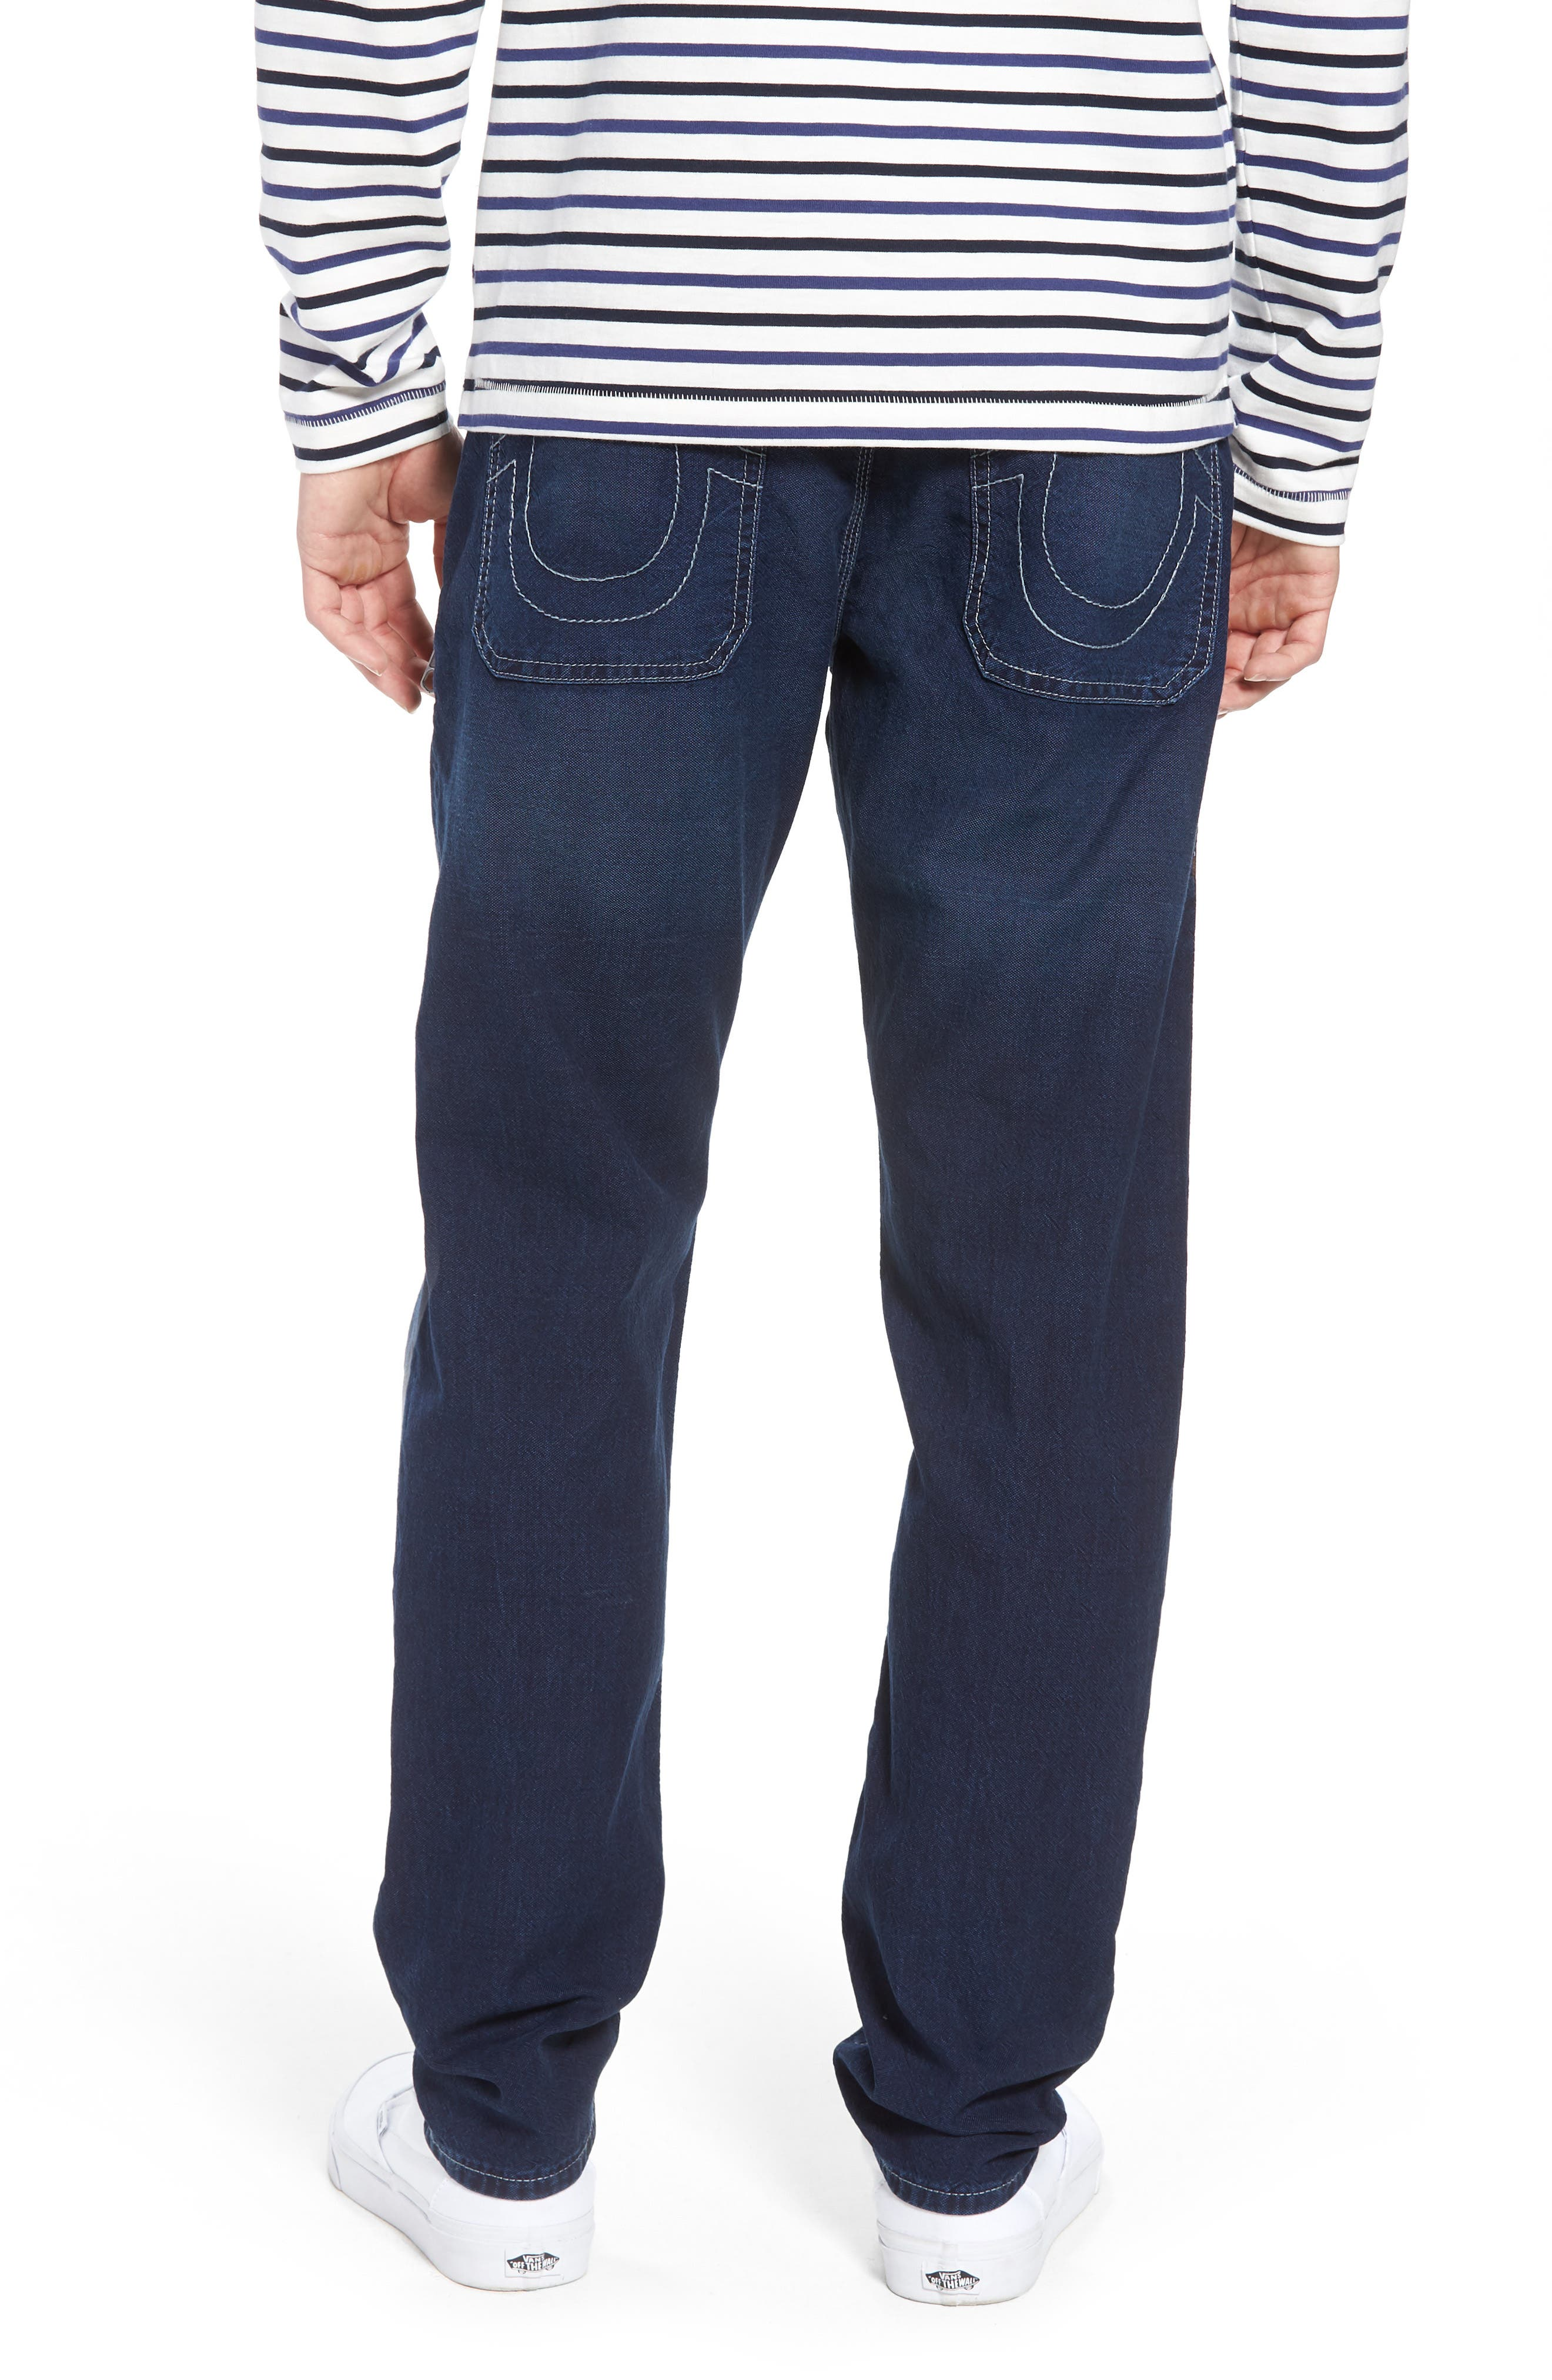 Trail Utility Jeans,                             Alternate thumbnail 2, color,                             Union Special